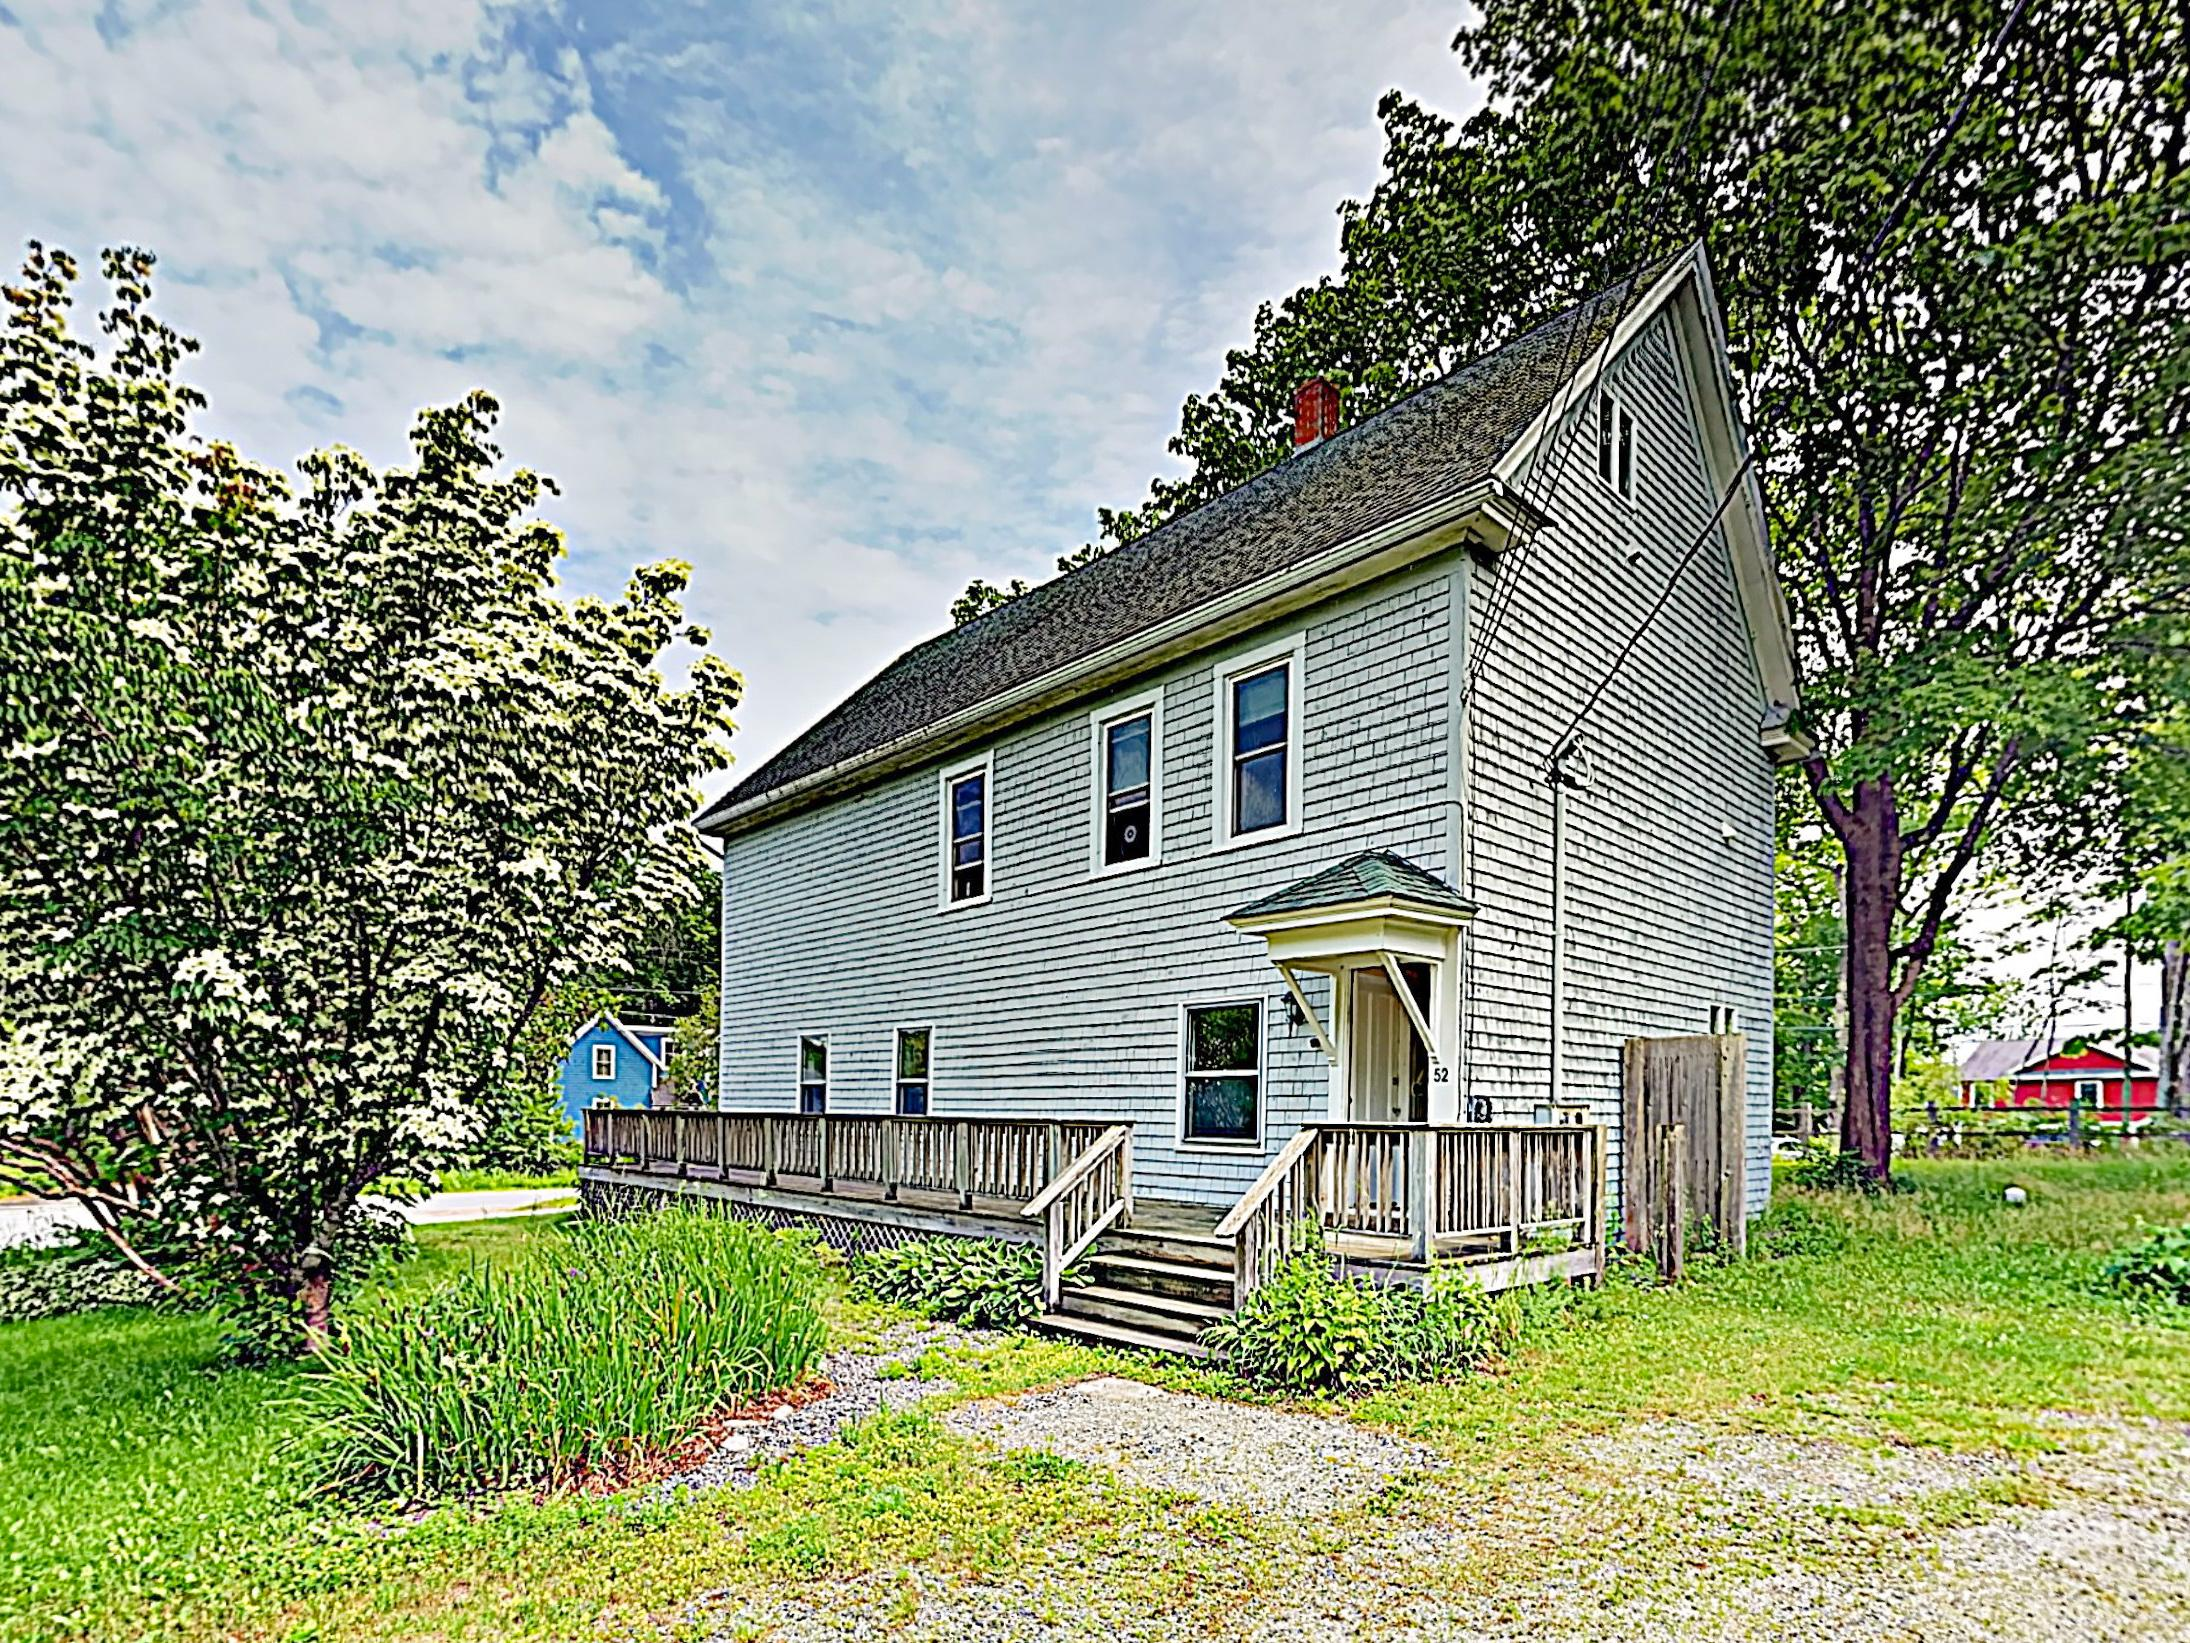 Located above the historic post office, this charming 3BR home is the quintessential New England escape.